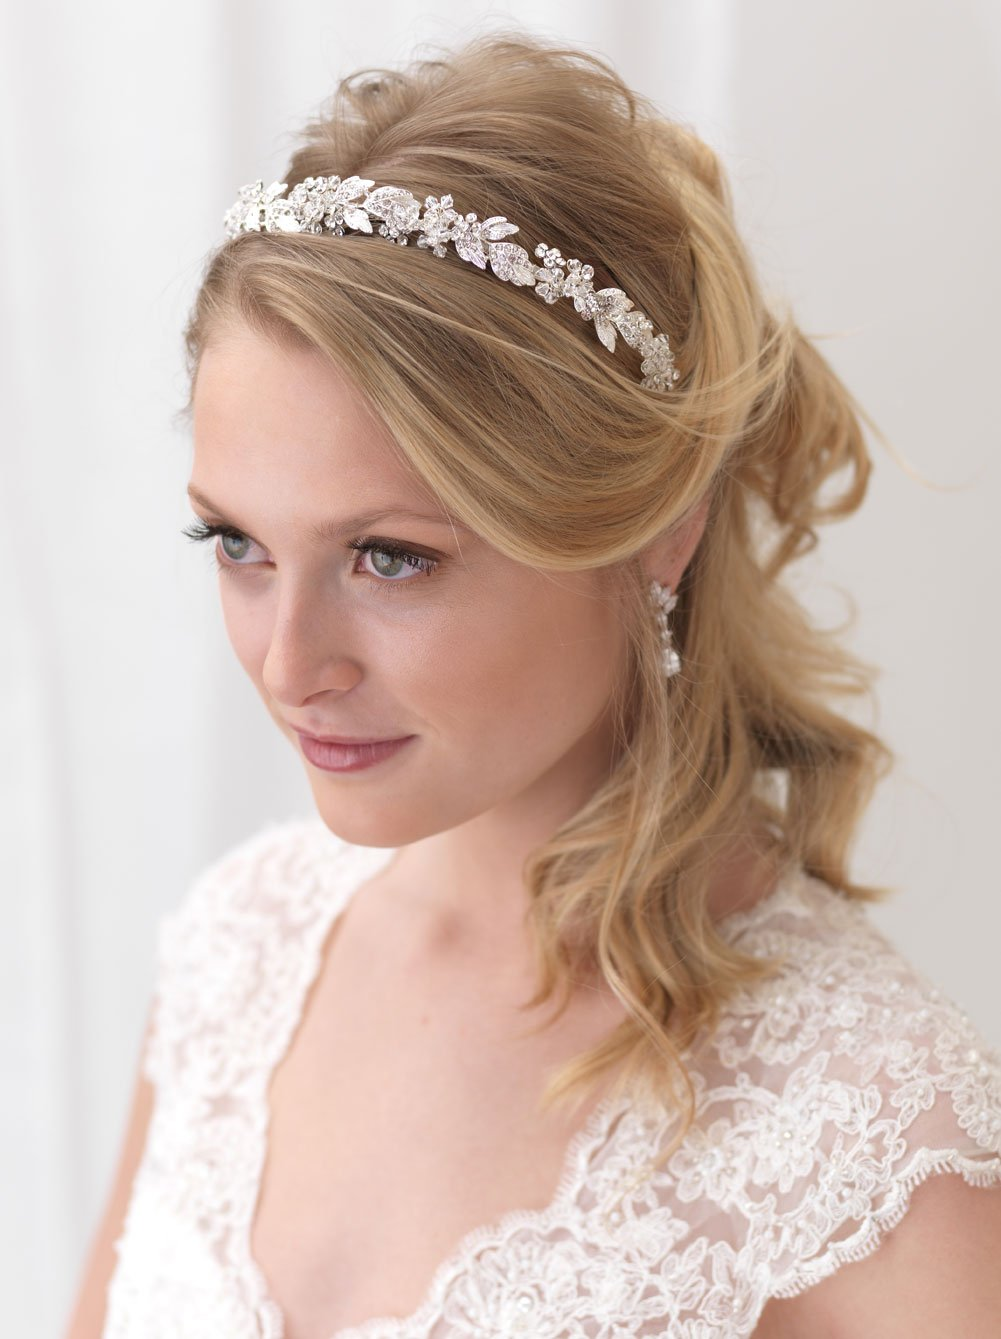 USABride Floral Headband Rhinestone Flower Bridal Headpiece Silver Plated with Rhinestones TI-3300 by USABride (Image #1)